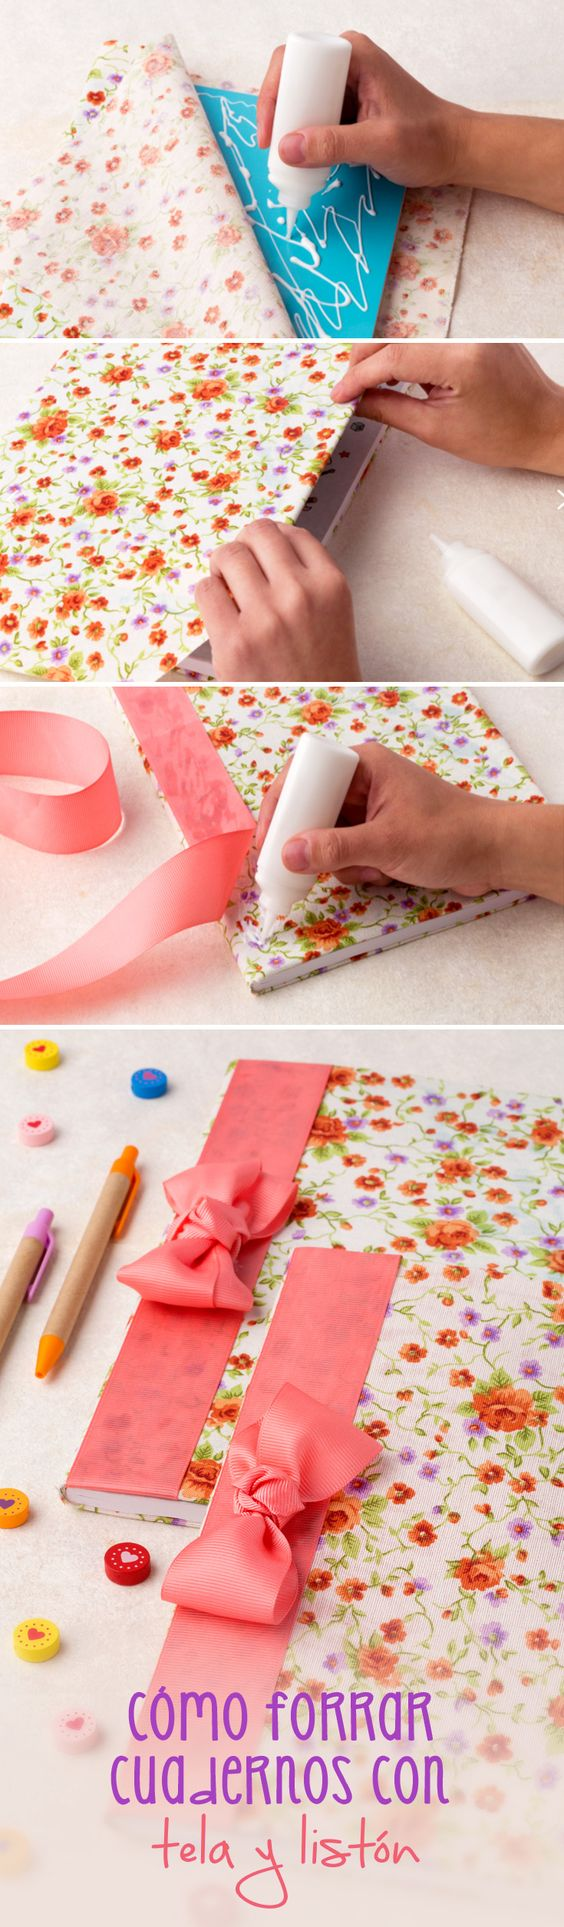 Ideas Para Decorar Tu Libreta Ideas Para Decorar Libretas Ideas Para El Regreso A Clases 2019